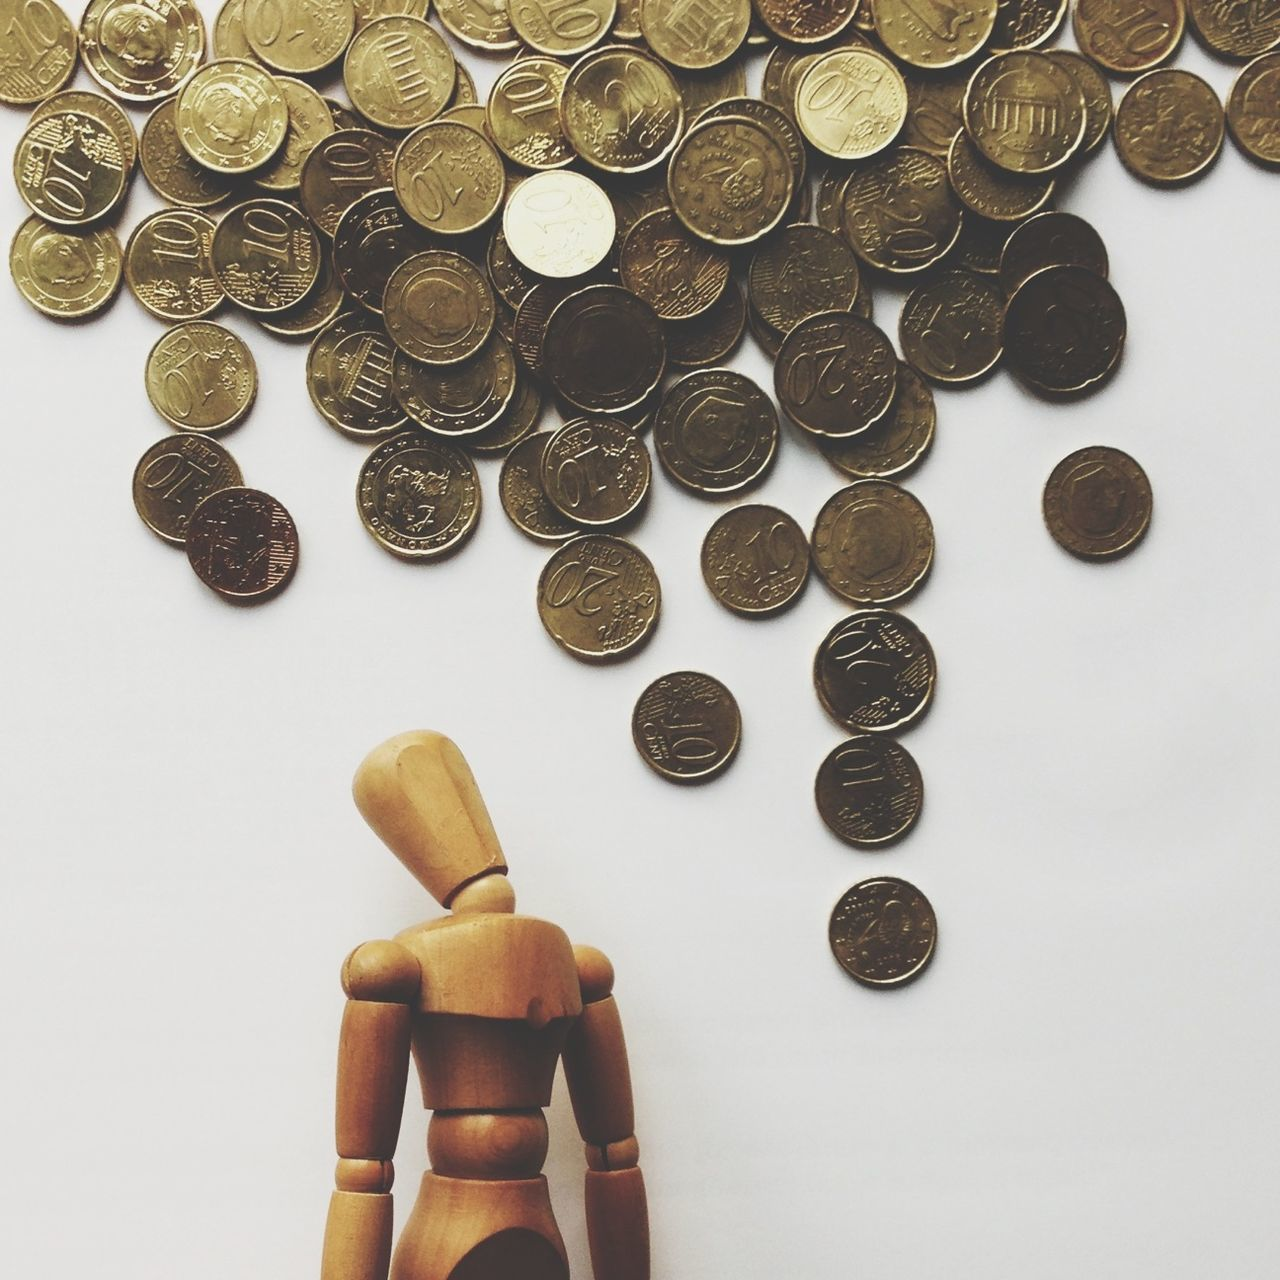 Euro coins with wooden figurine